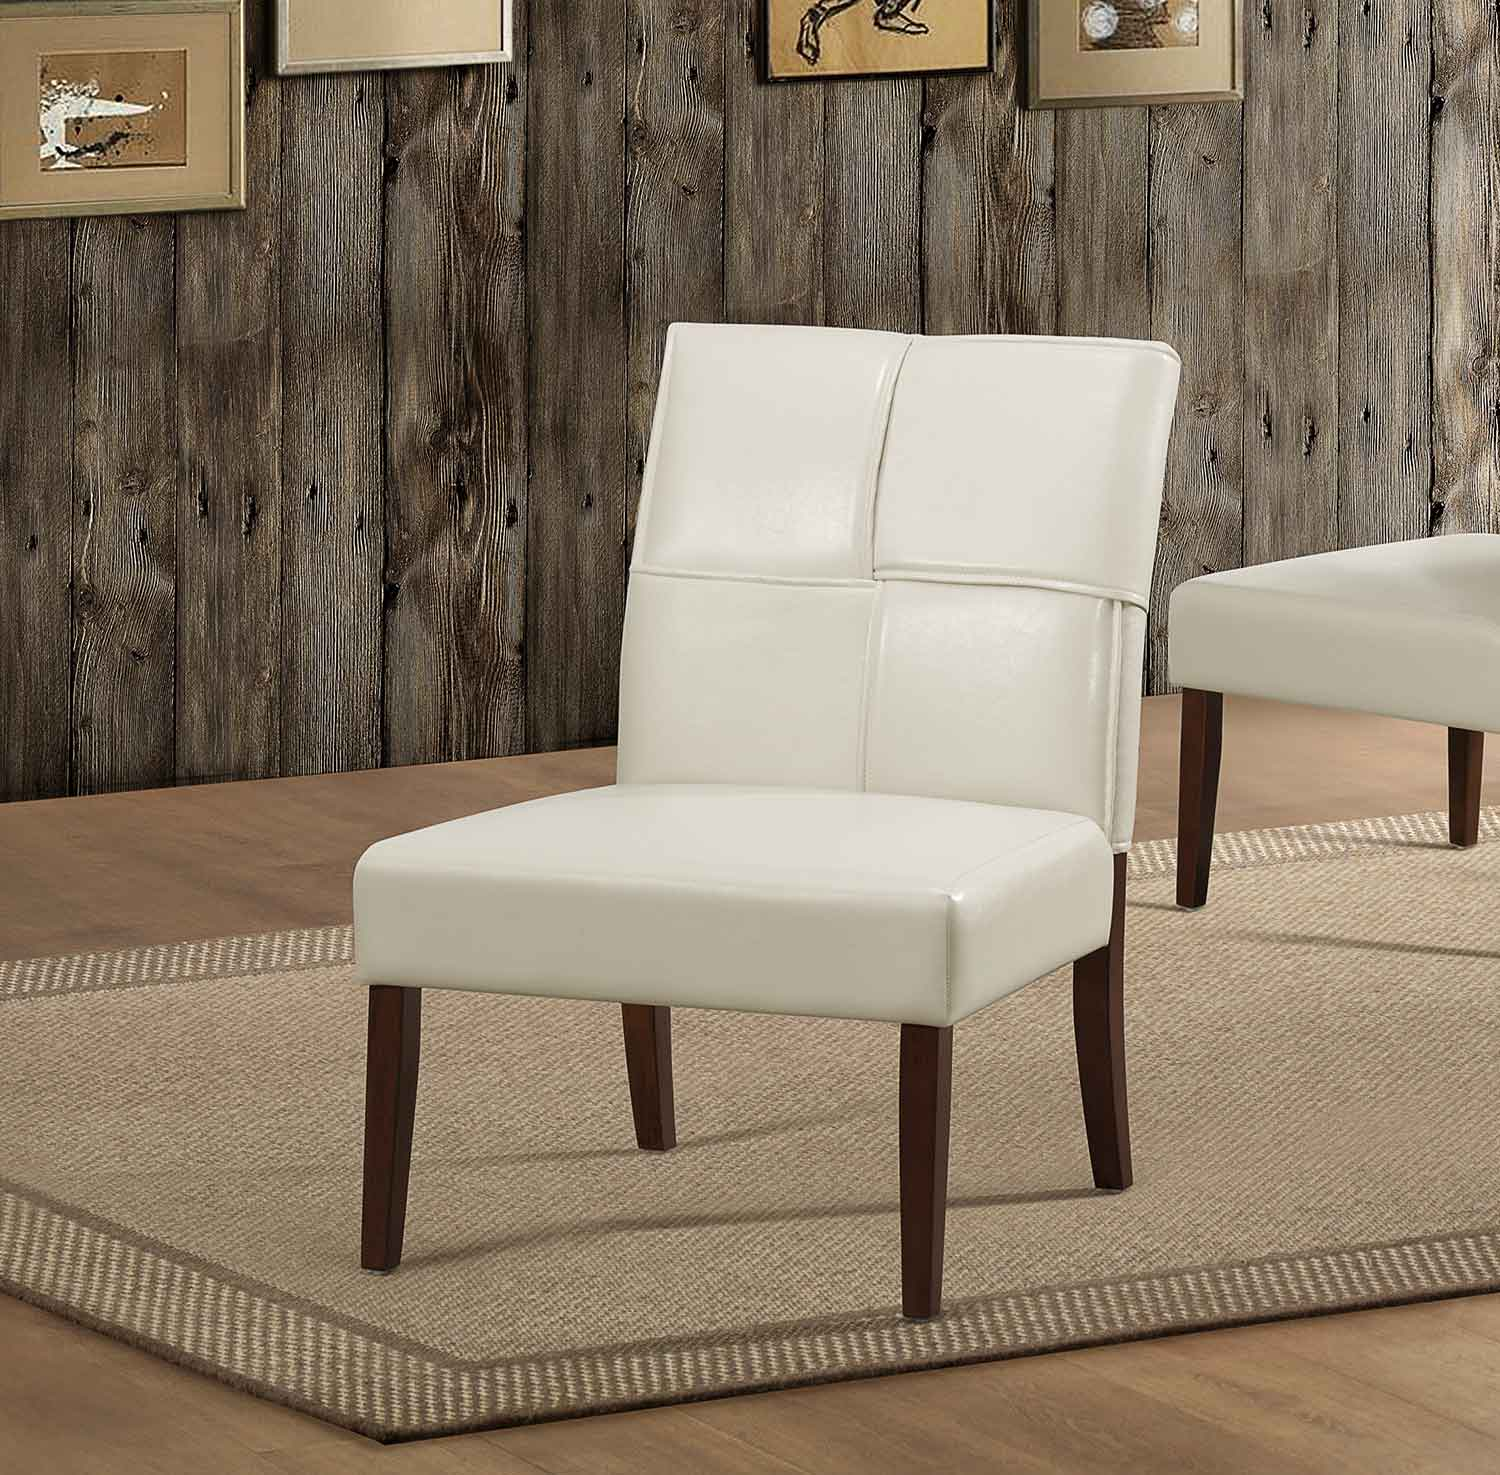 Homelegance Oriana Accent Chair - Cream